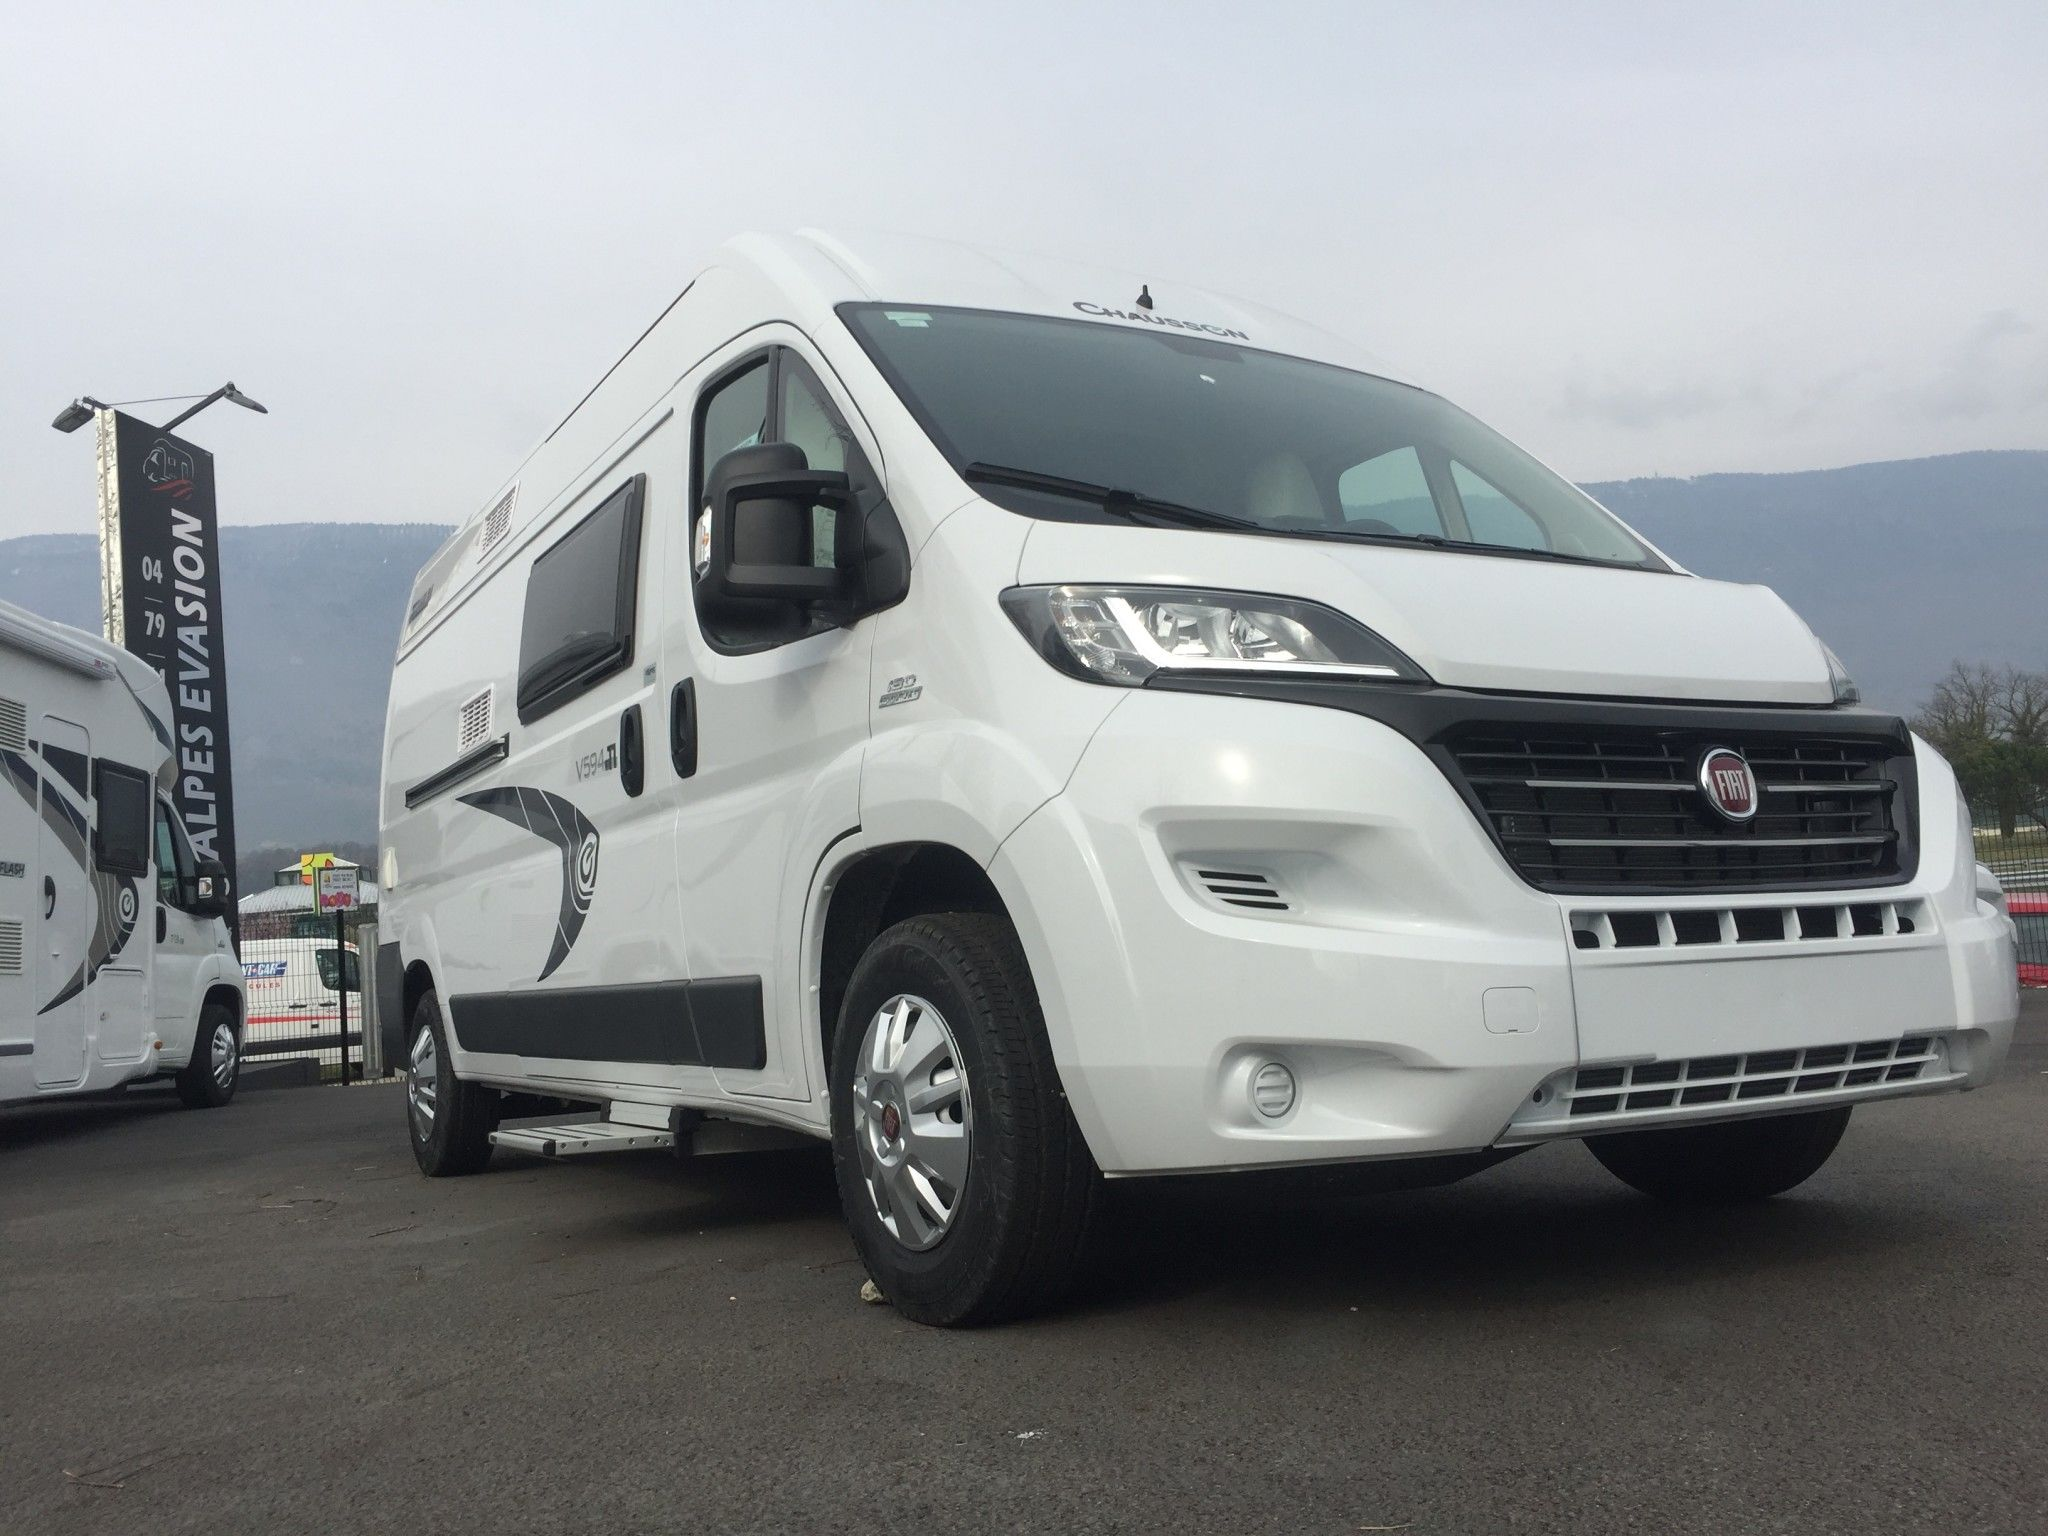 Camping-car CHAUSSON TWIST START V 594